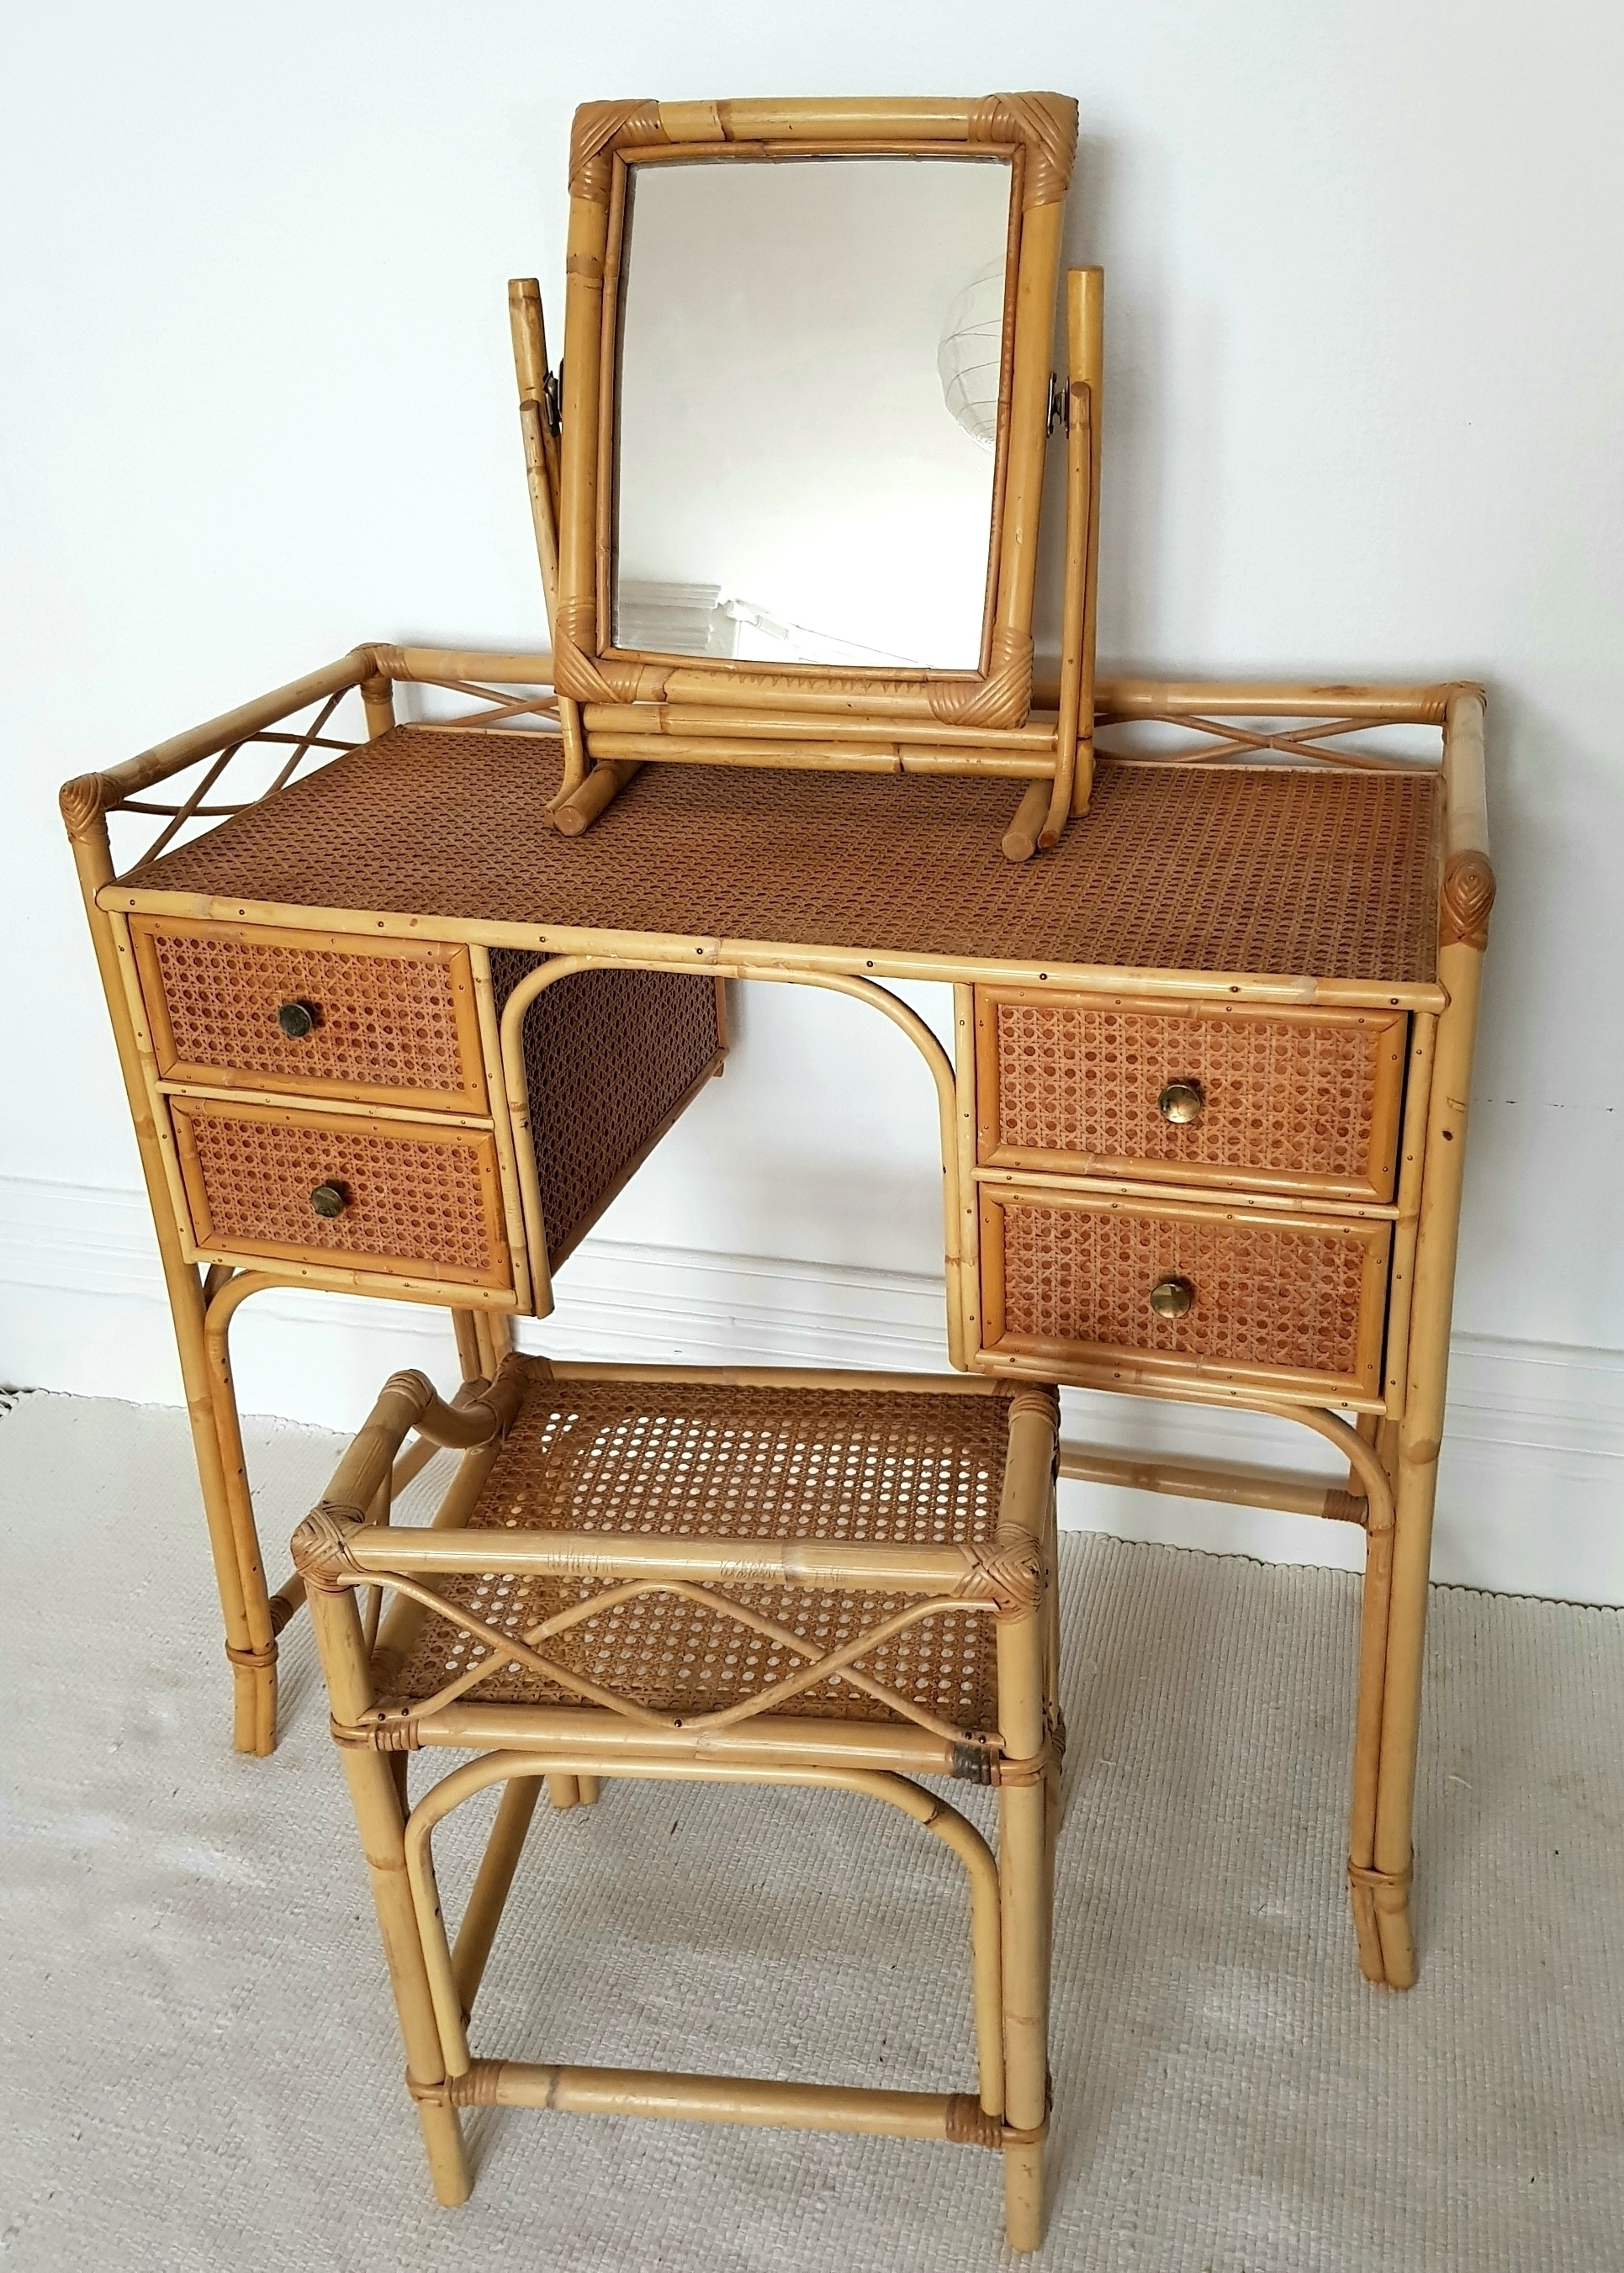 midcentury bamboo rattan dressing table set cane desk with stool and mirror bohemian